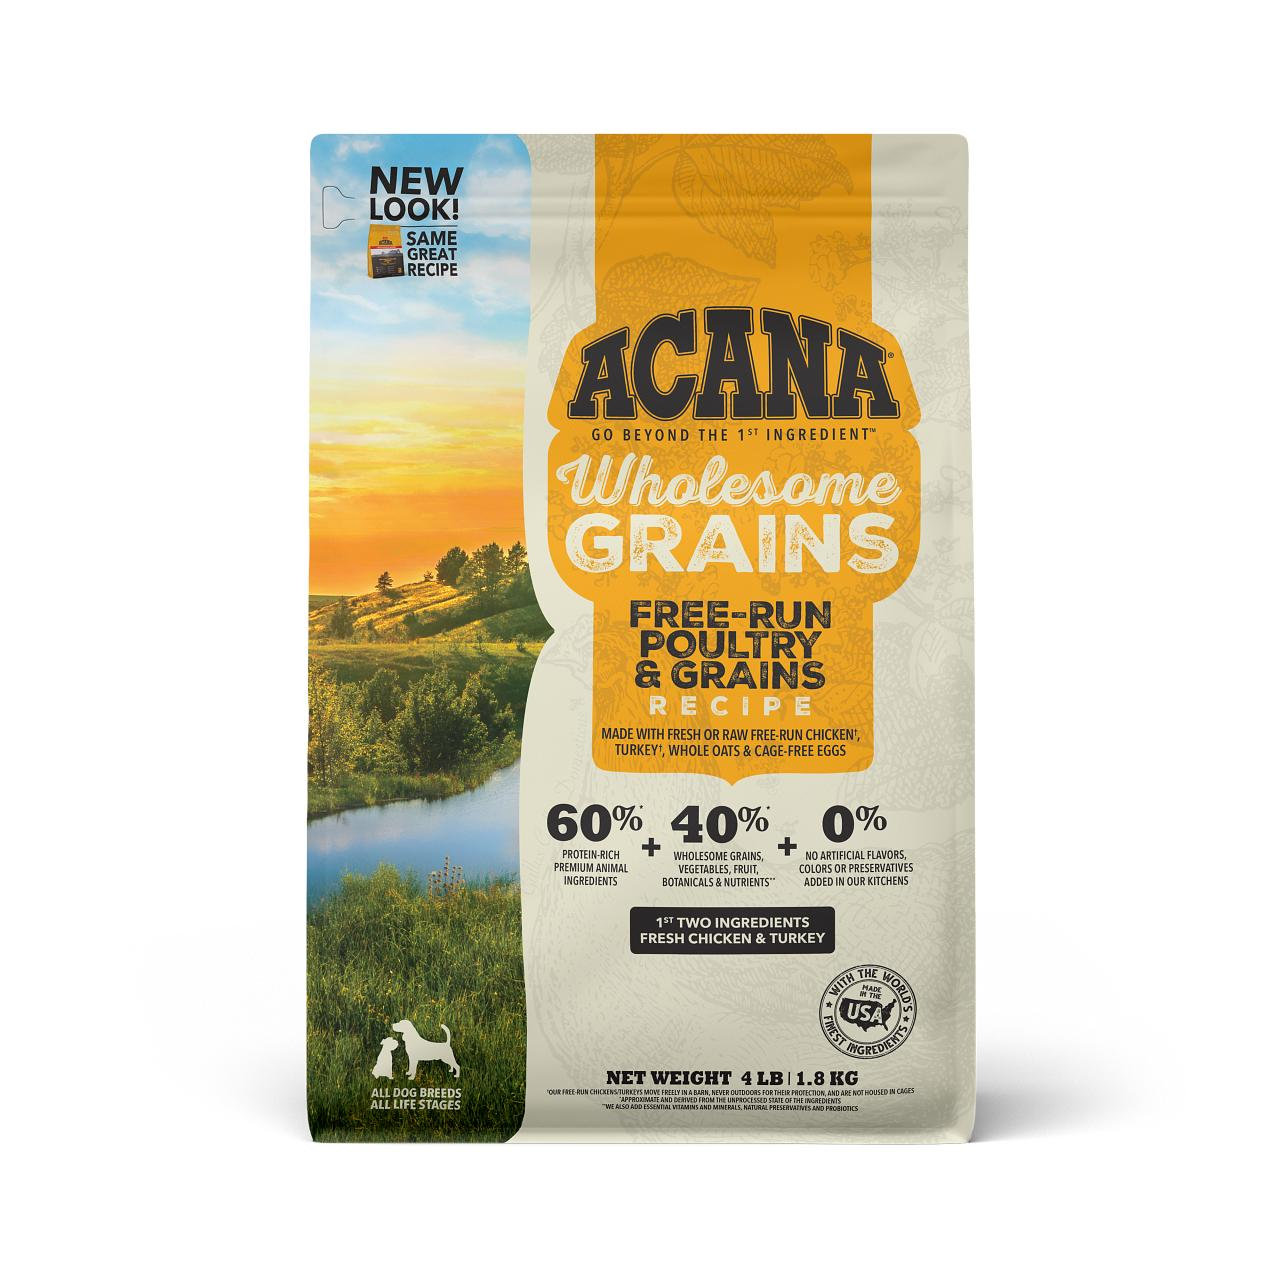 ACANA Wholesome Grains Free-Run Poultry & Grains Dry Dog Food, 11.5-lb